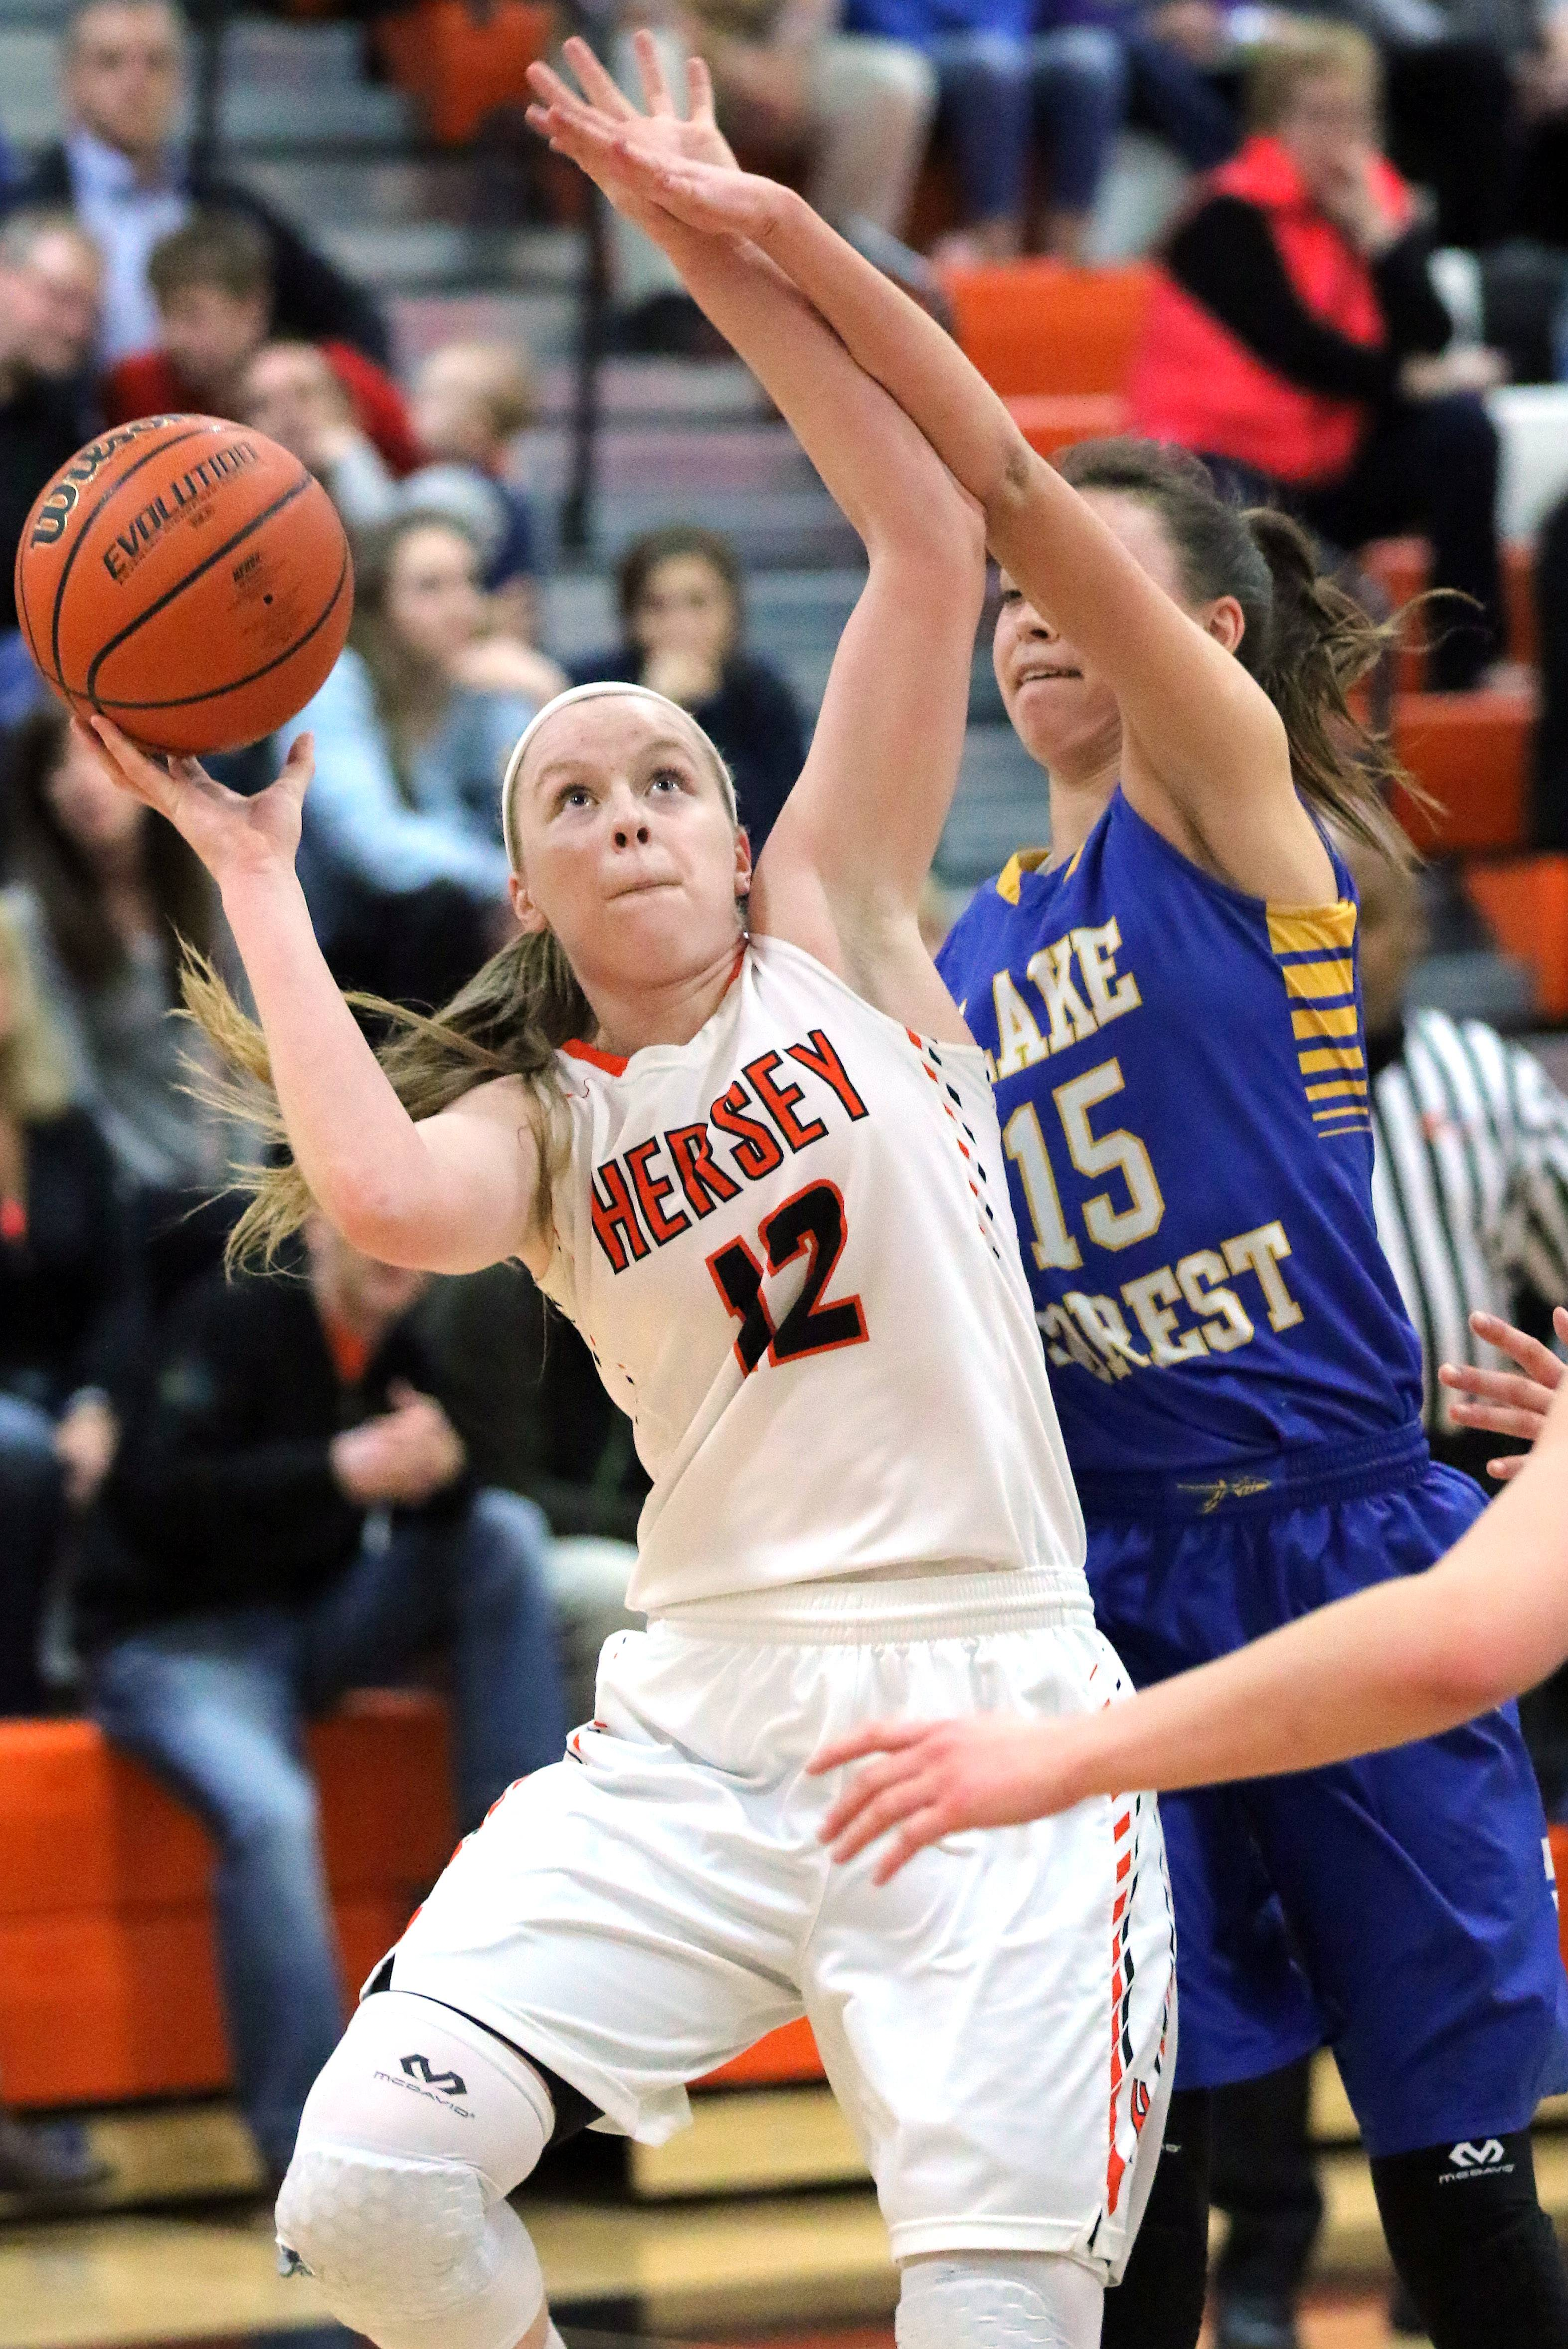 Hersey's Claire Gritt (12) drives on Lake Forest's Halle Douglass during Class 4A sectional semifinal play Monday night at Libertyville.